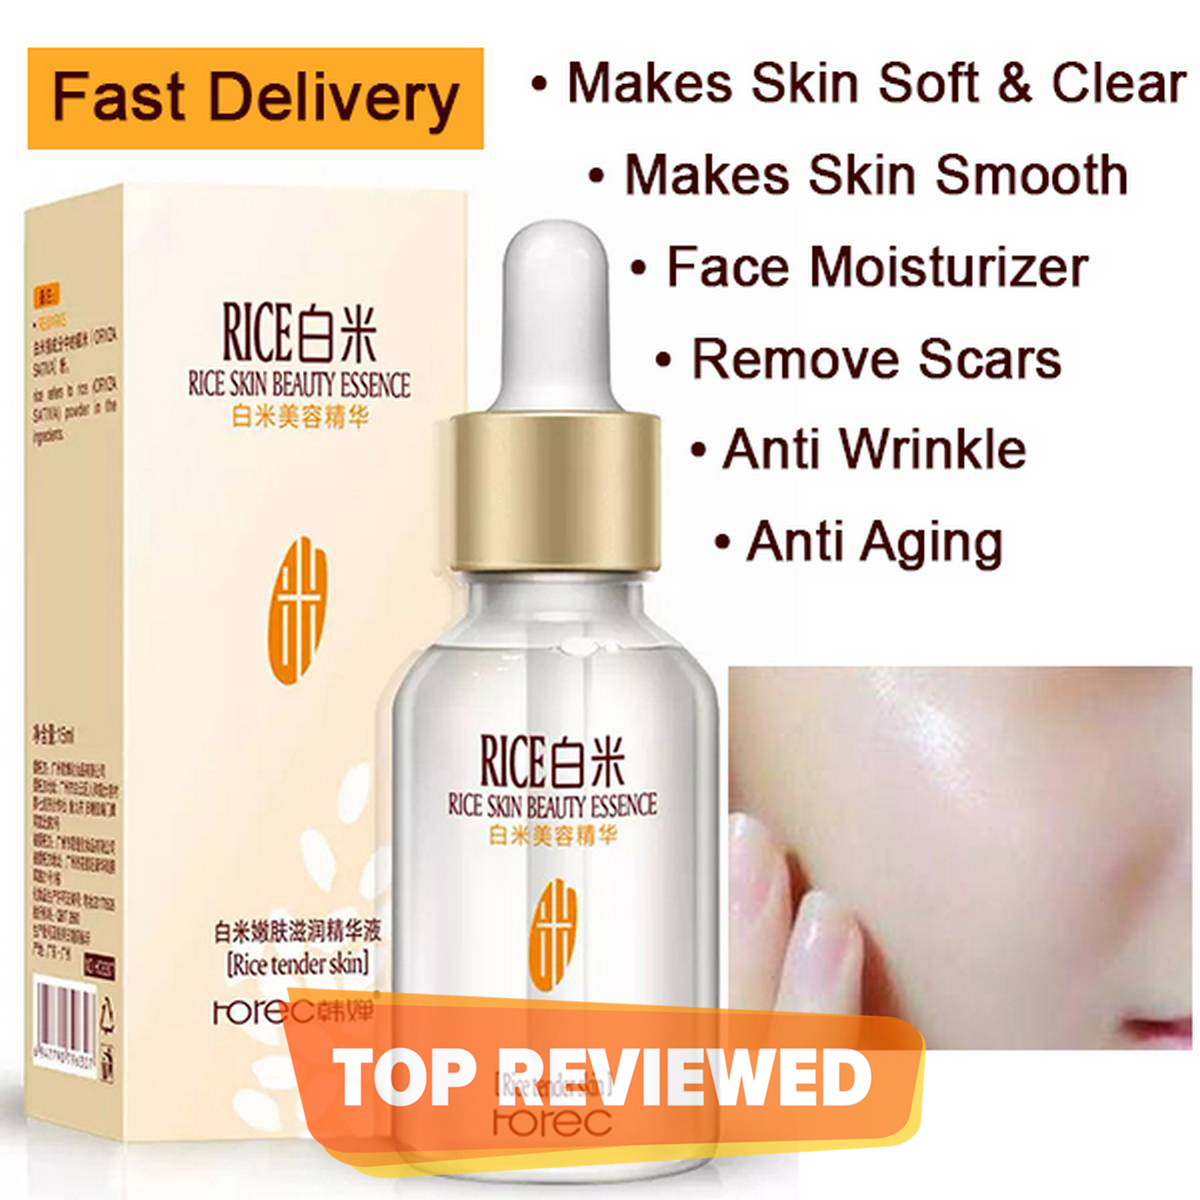 Imported White Rice Serum for Face Skin Care Face Moisturizer Acne Treatment Anti Wrinkle Anti Aging Soft & Clear Skin